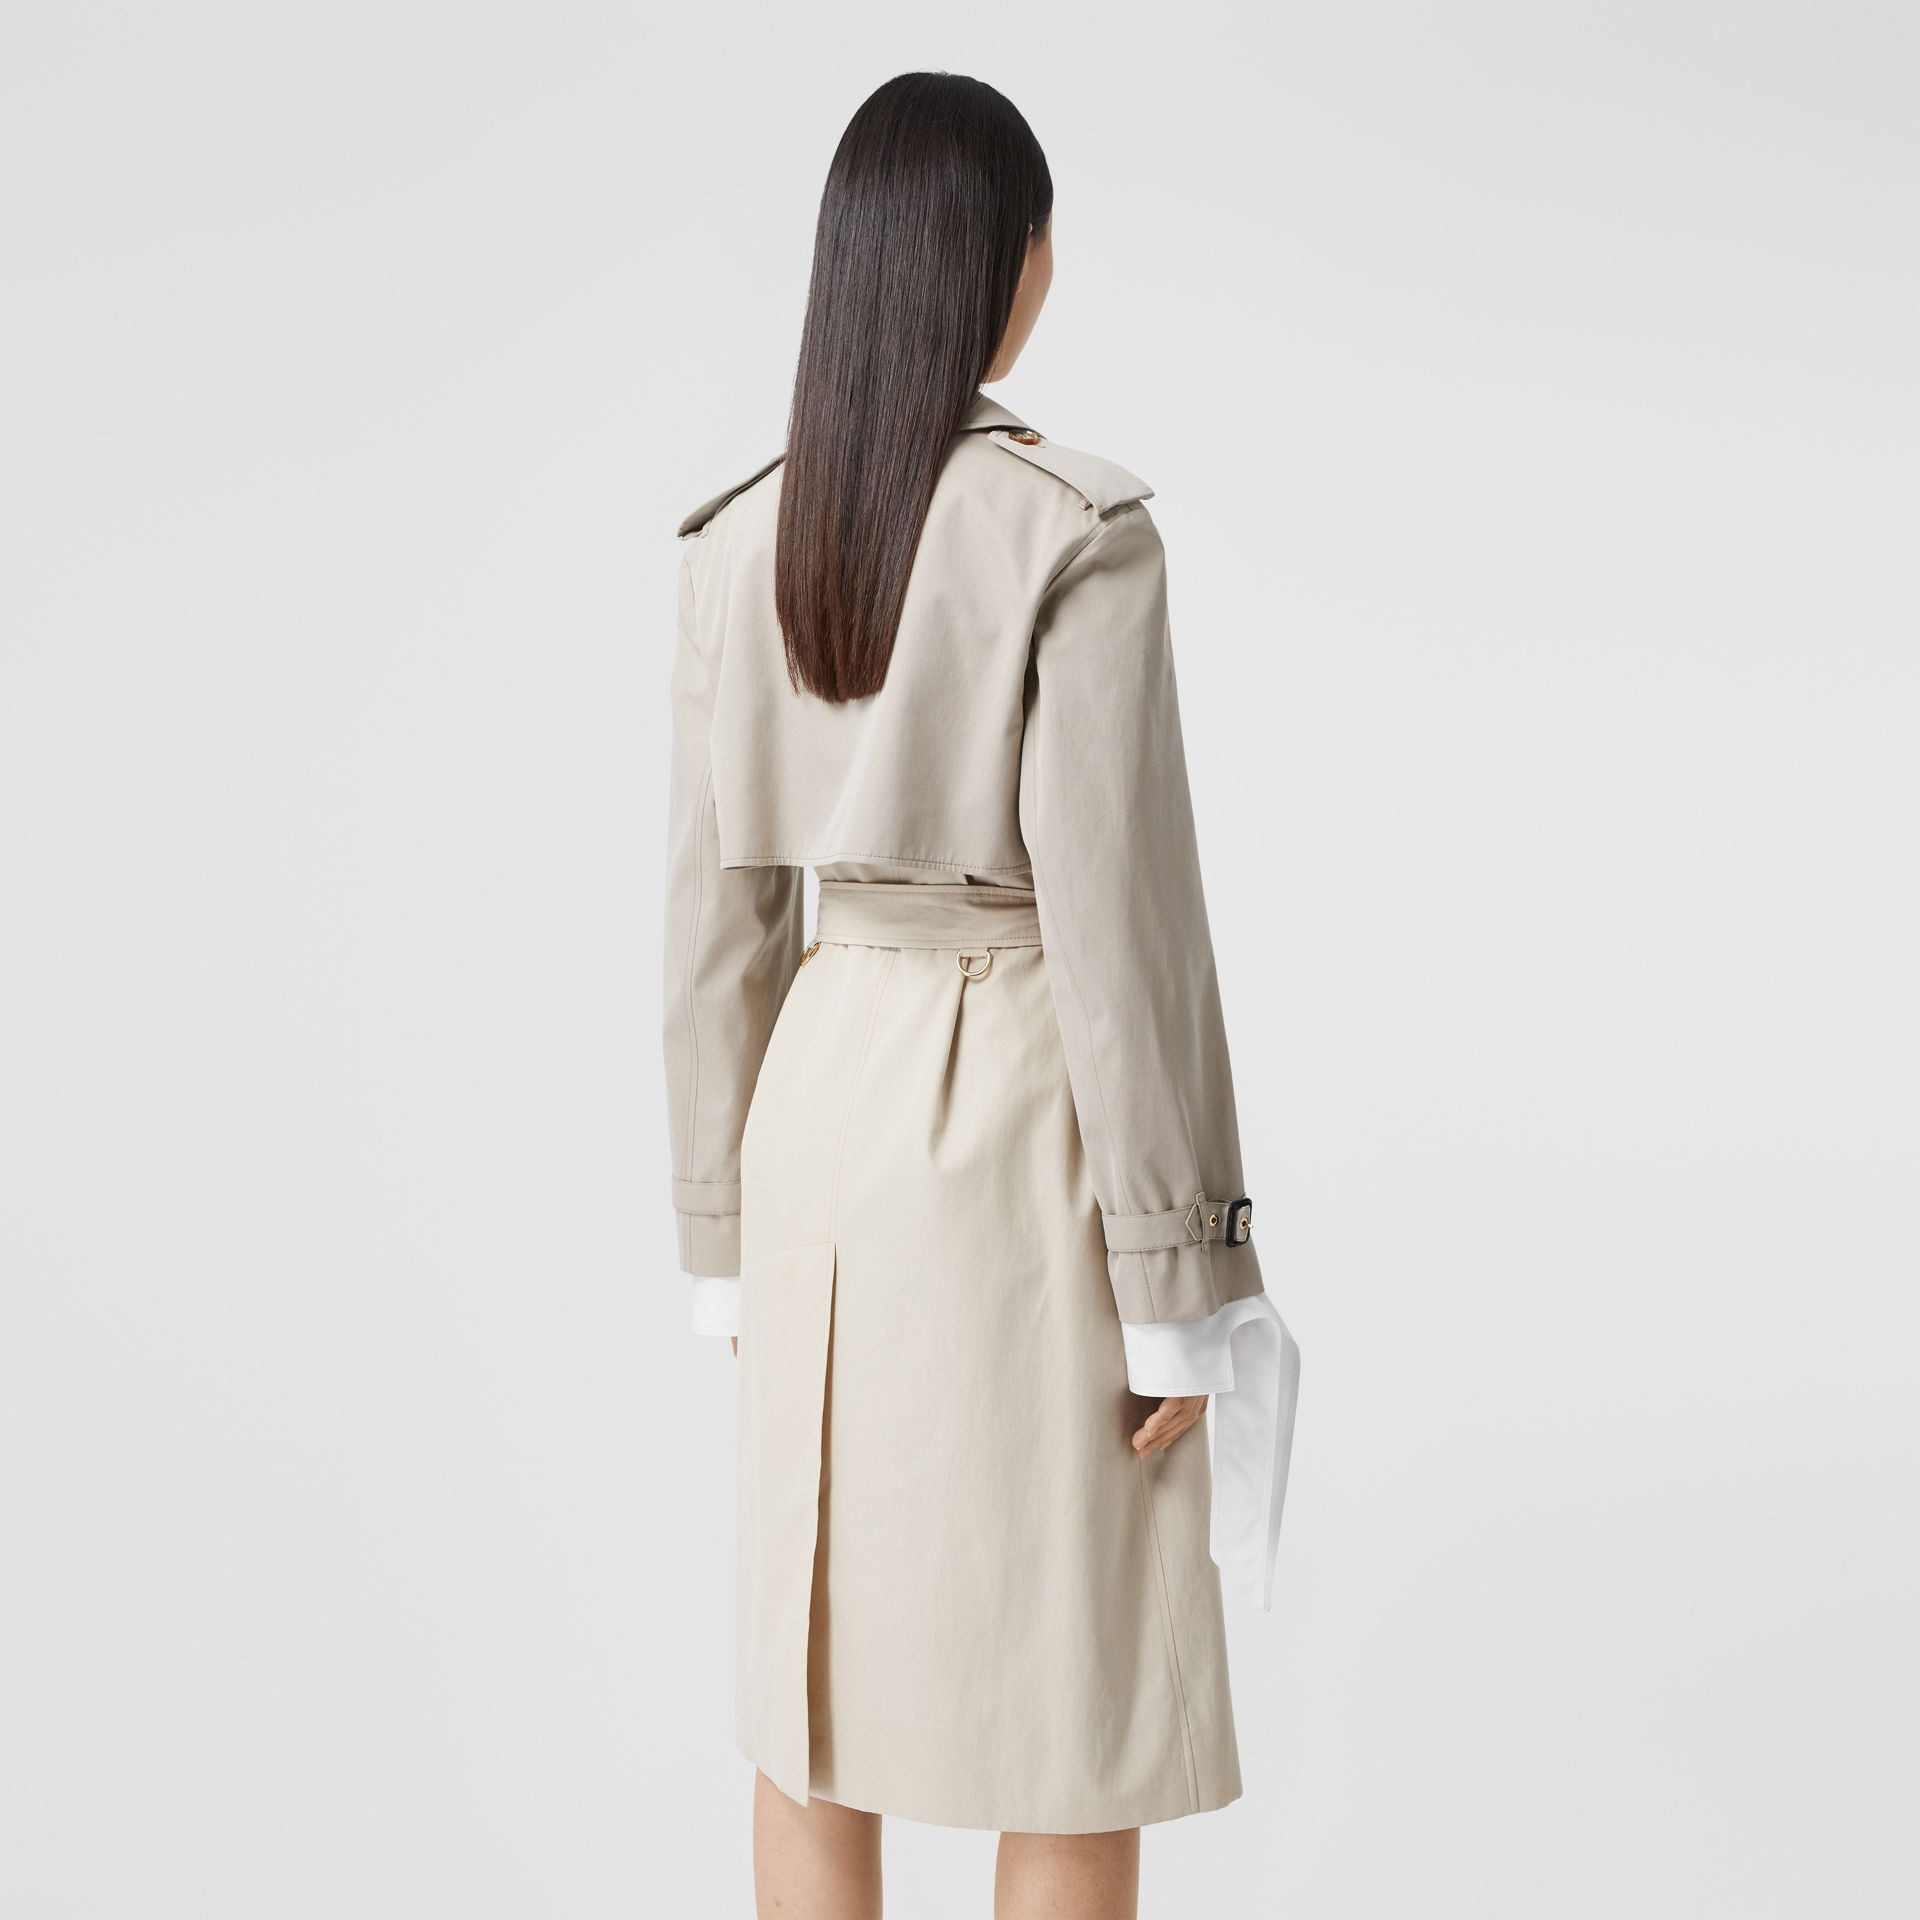 Two-tone Reconstructed Trench Coat in Light Sand - Women | Burberry United Kingdom - gallery image 2